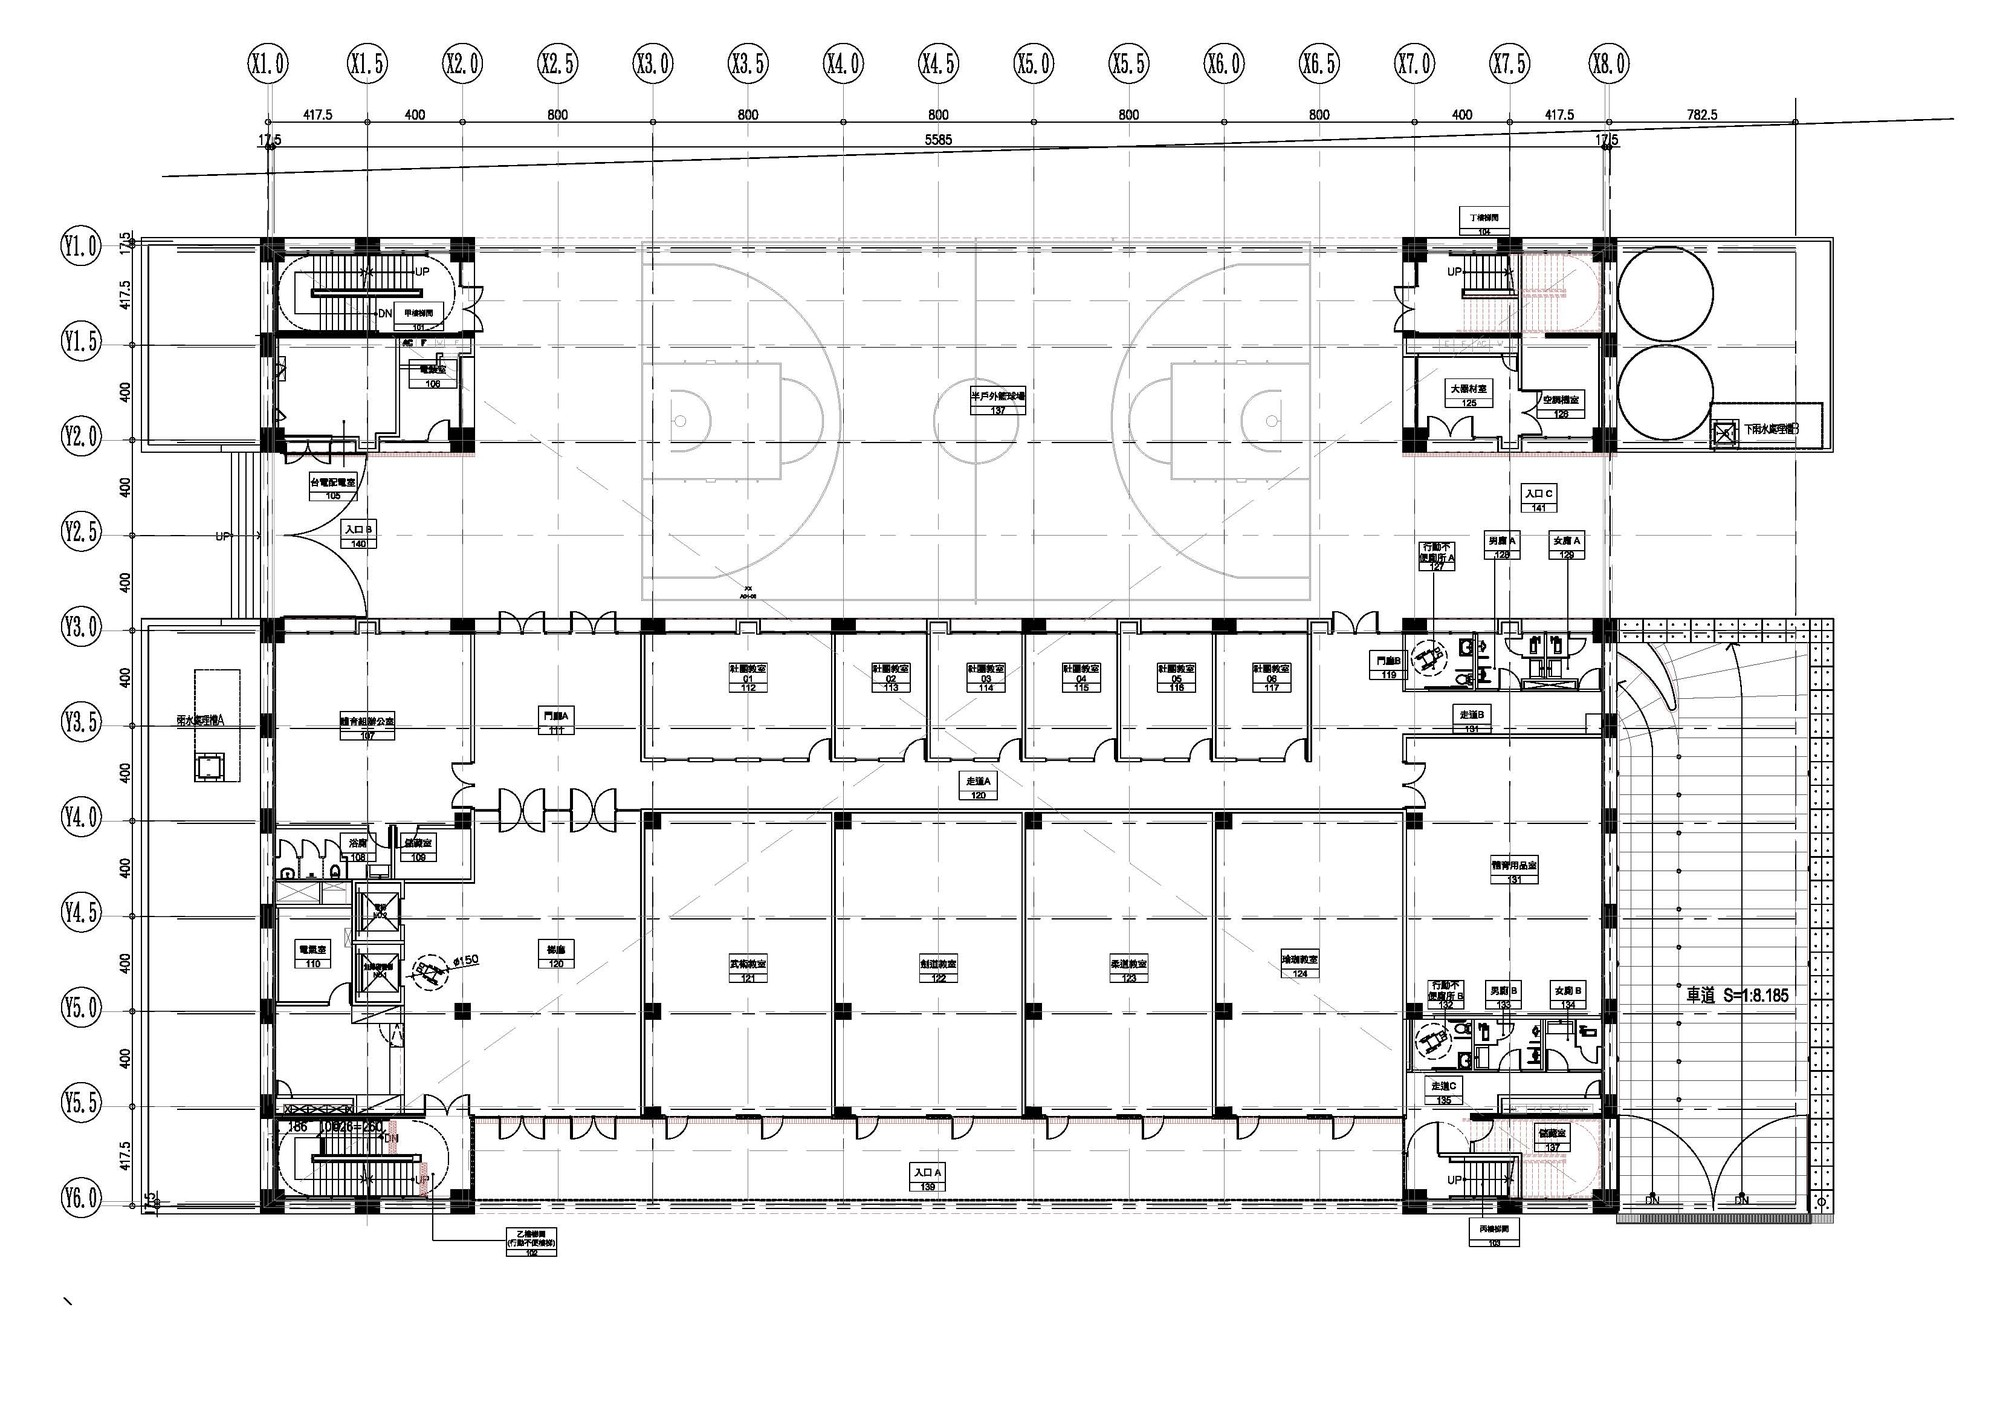 Ntfsh gymnasium qlab archdaily for Gym floor plan design